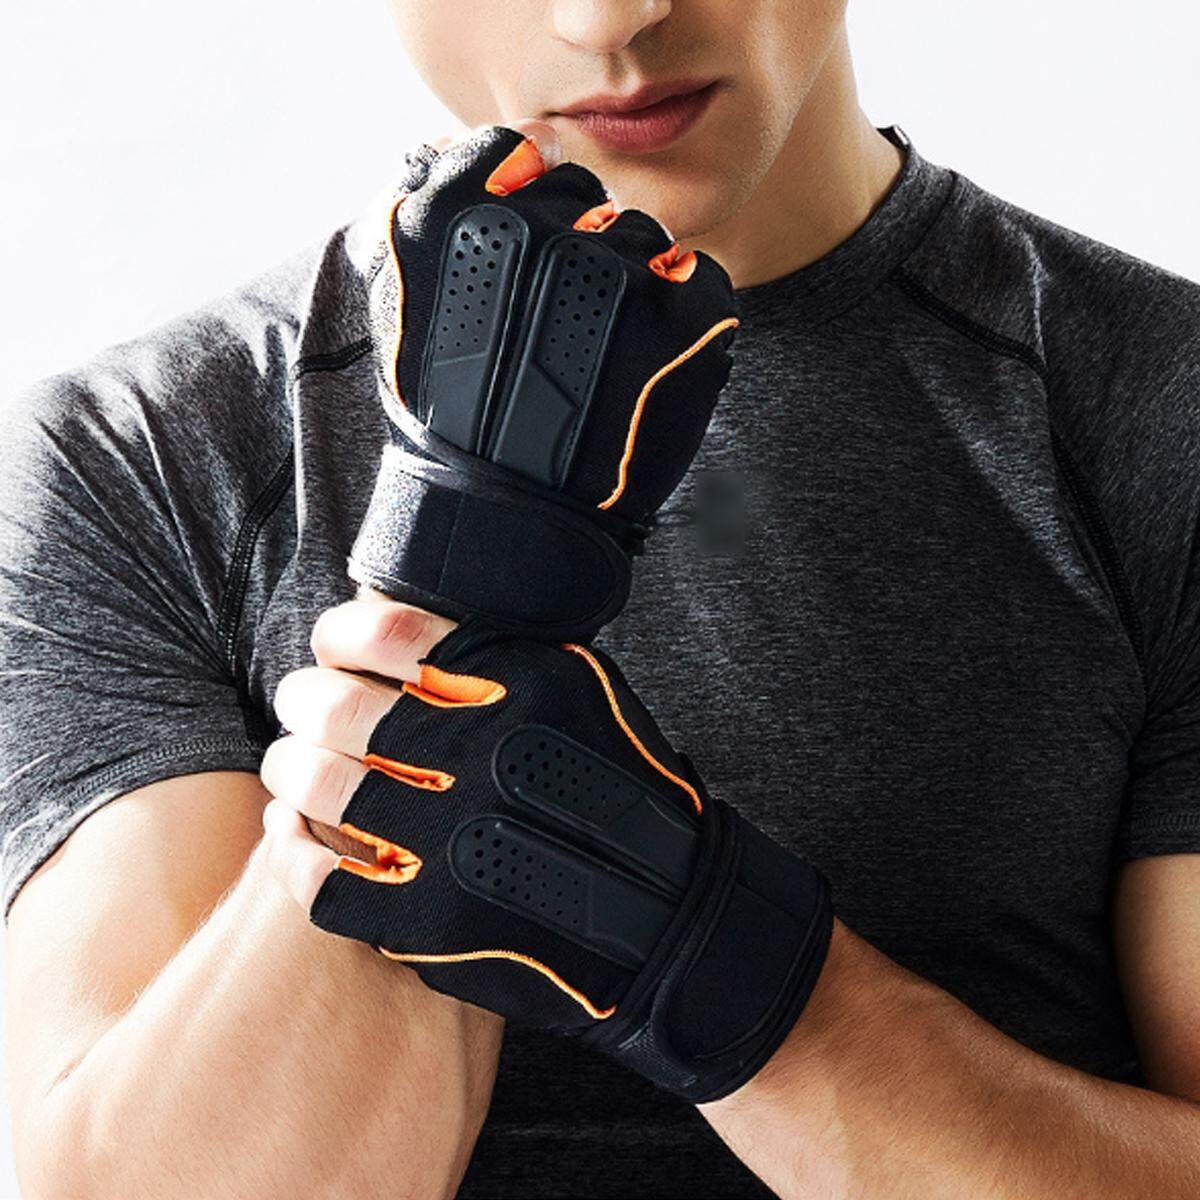 【free Shipping + Flash Deal】body Building Gloves Fitness Gym Wear Weight Lifting Cycling Workout Training (xl) By Freebang.